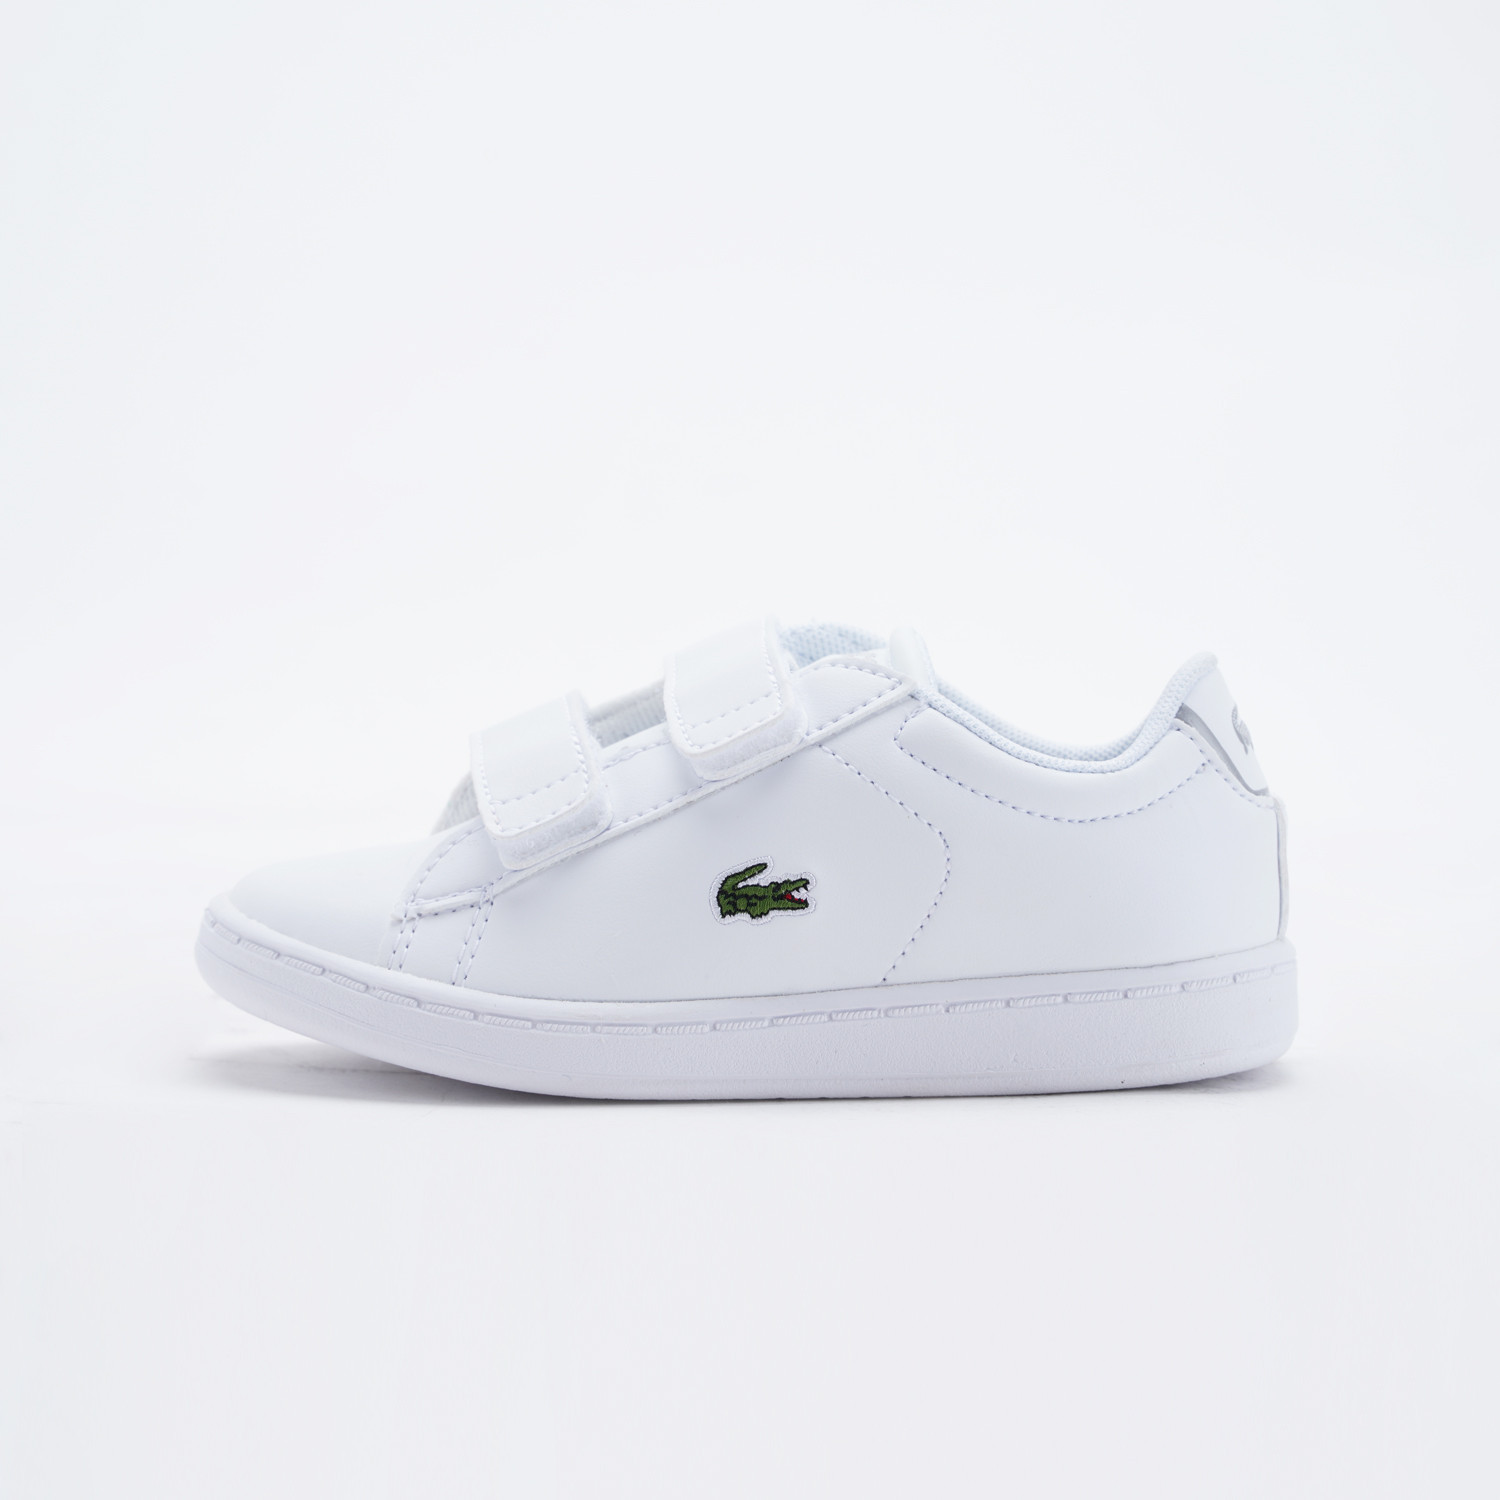 Lacoste Carnaby Evo Bl 21 1 Sui Βρεφικά Παπούτσια (9000091785_3554)